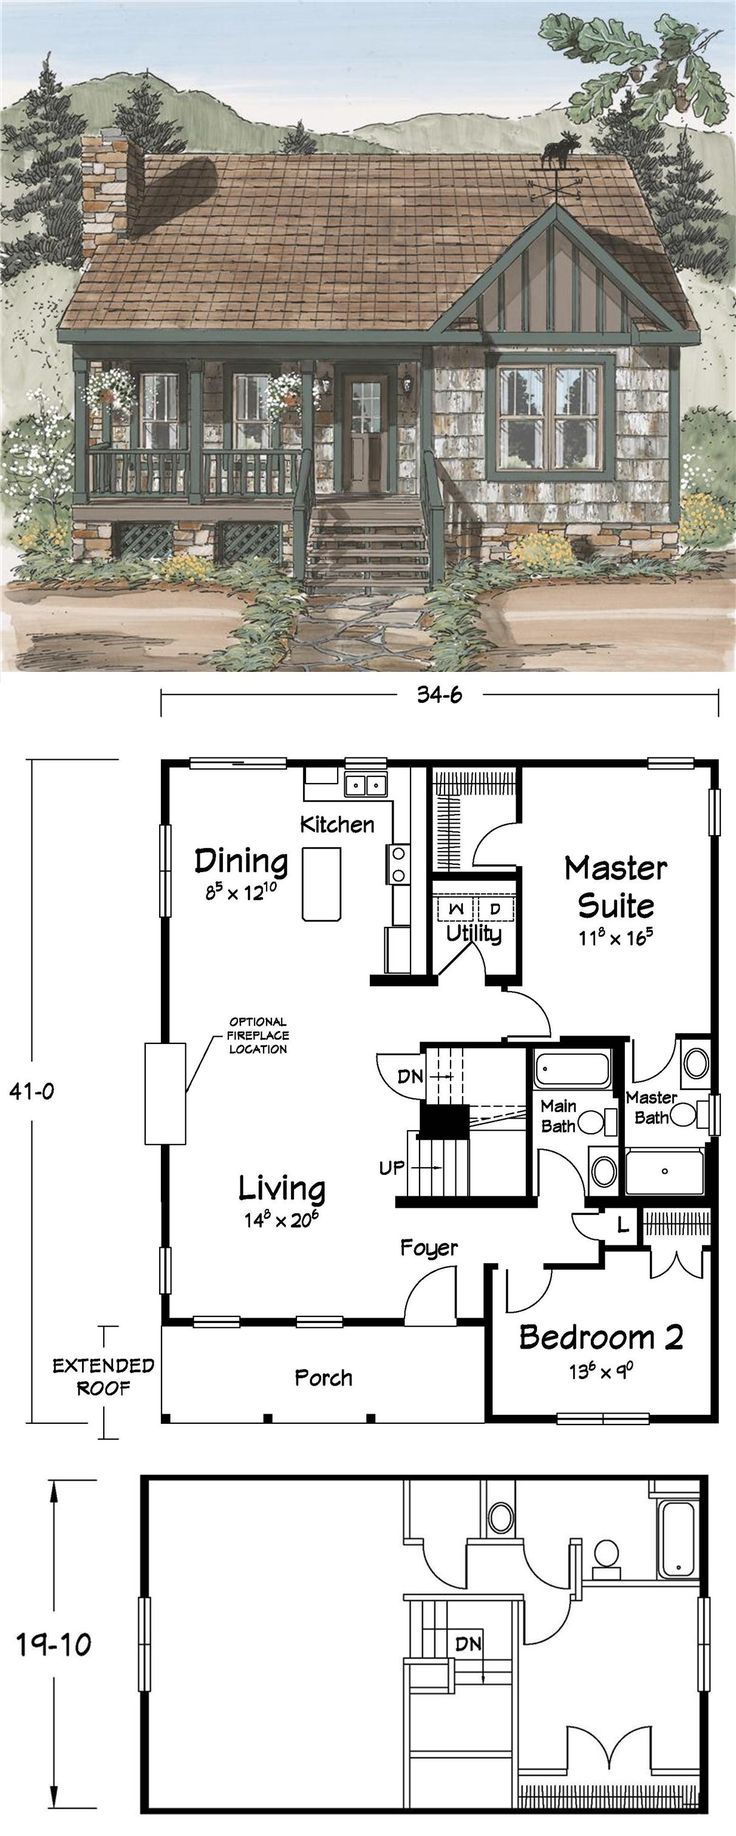 Cute floor plans tiny homes pinterest cabin small for Micro home plans